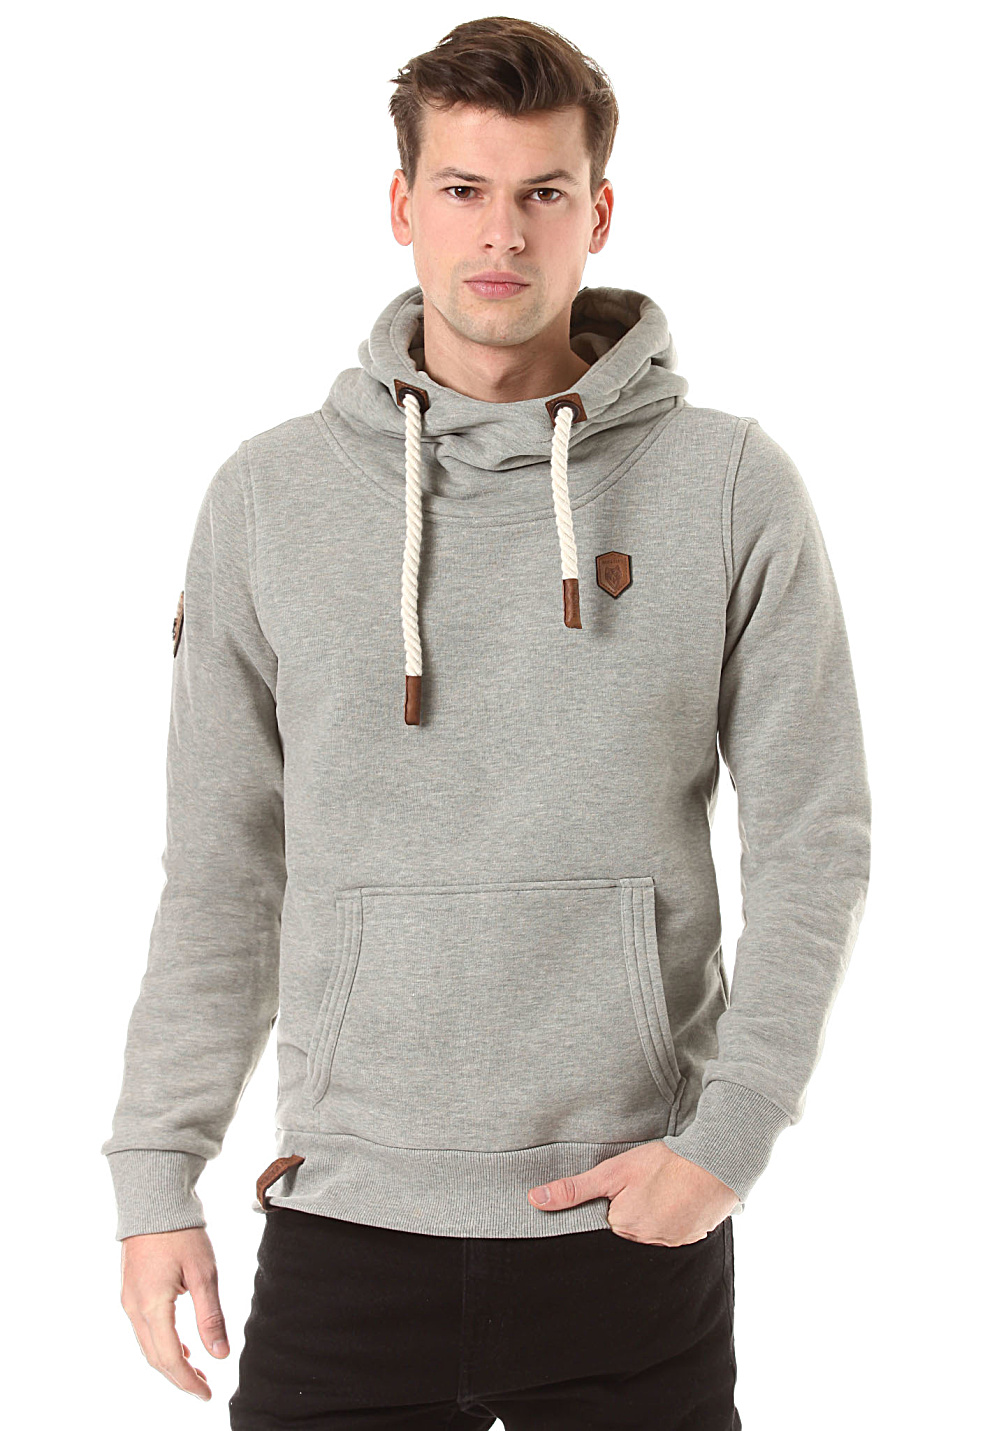 Men's Hoodies Supapimmel